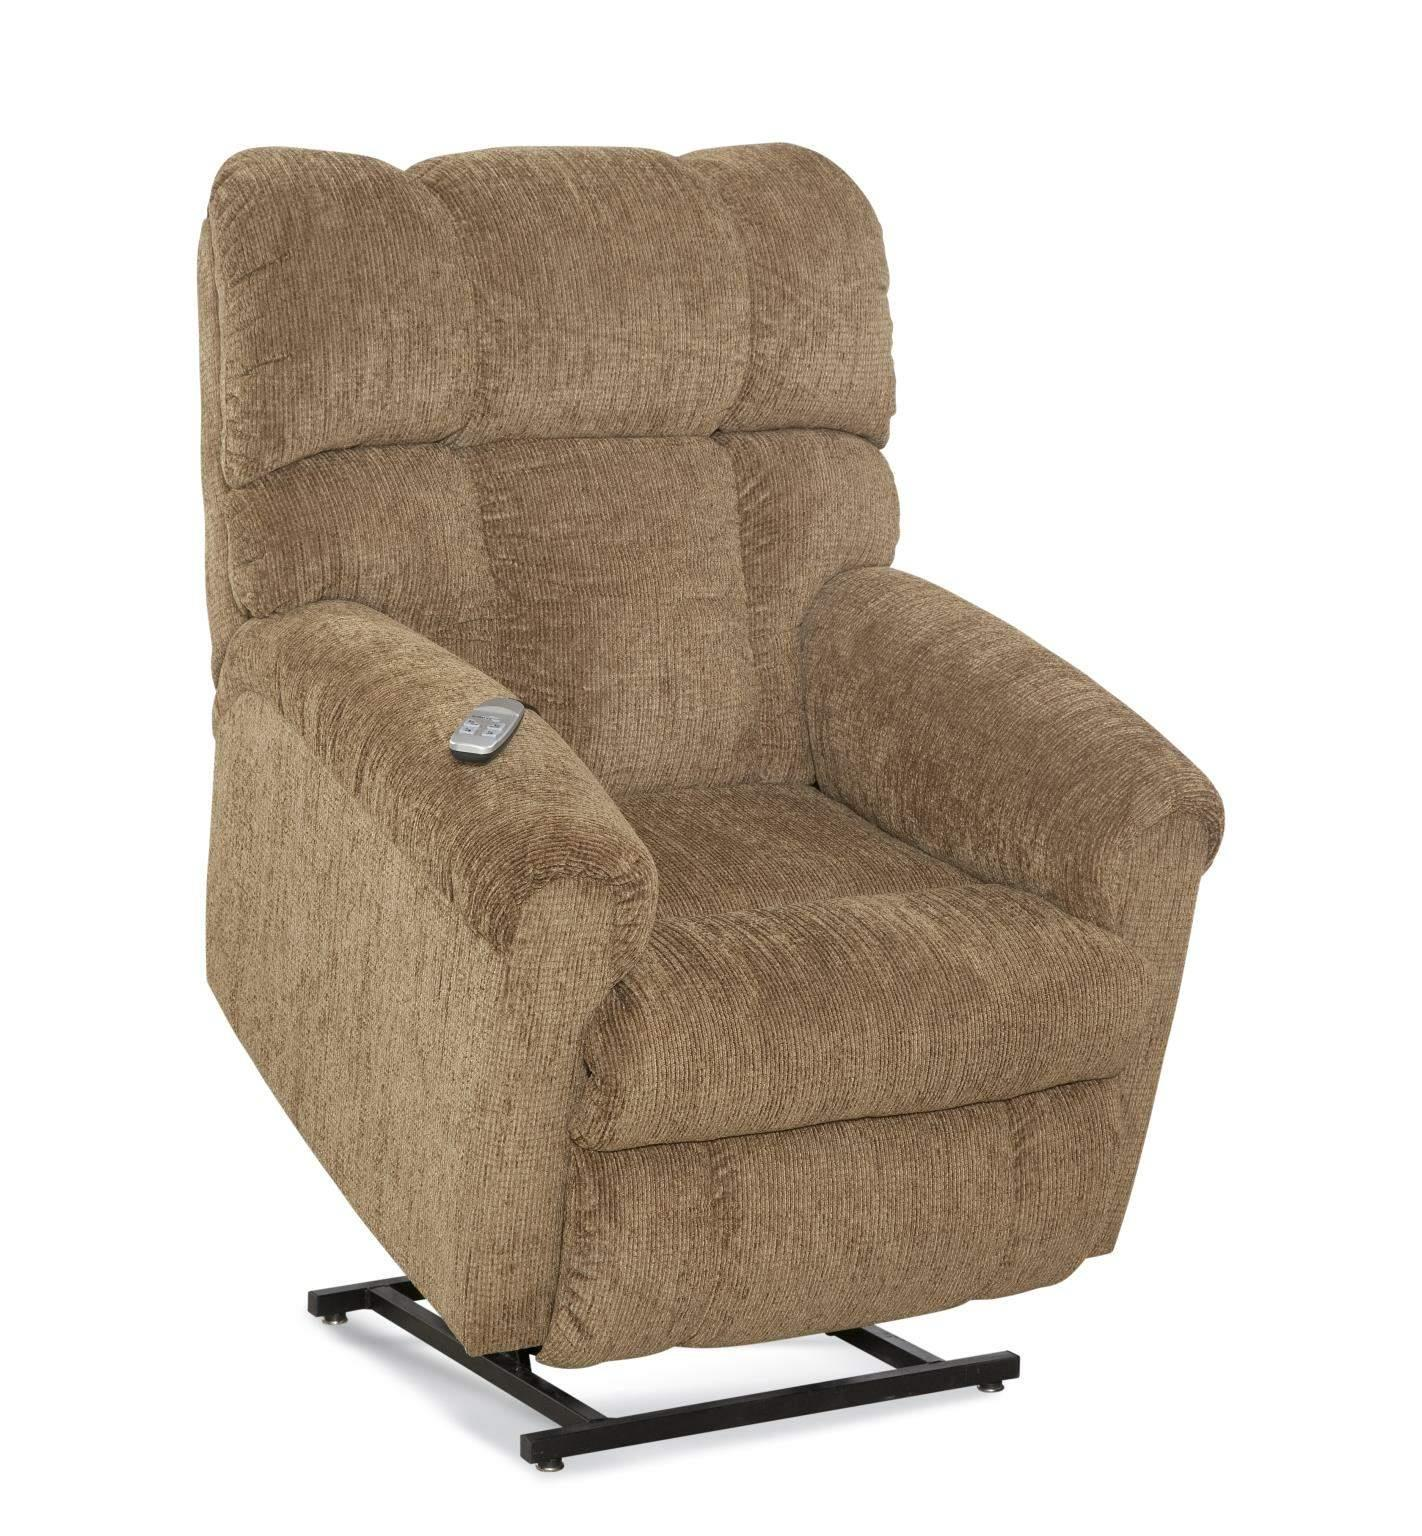 lift chair walgreens evenflo modern high homestretch chairs homs 134 55 16 norton toast